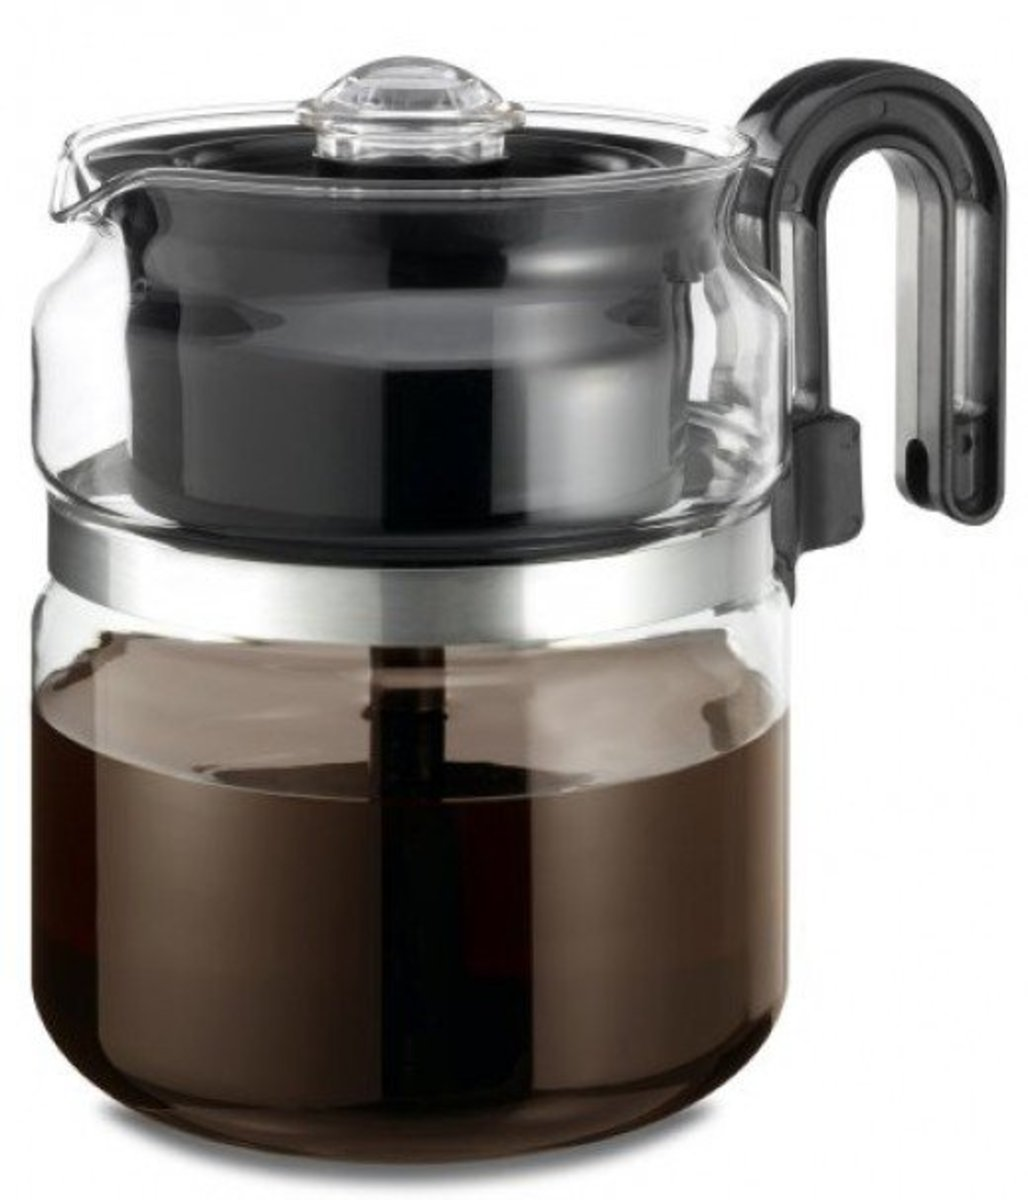 The Medelco 8-cup is constructed from borosilicate glass.  This top-rated stovetop percolator is dishwater safe and has a stay cool handle, making it comfortable and convenient, as well as stylish and easy to use.